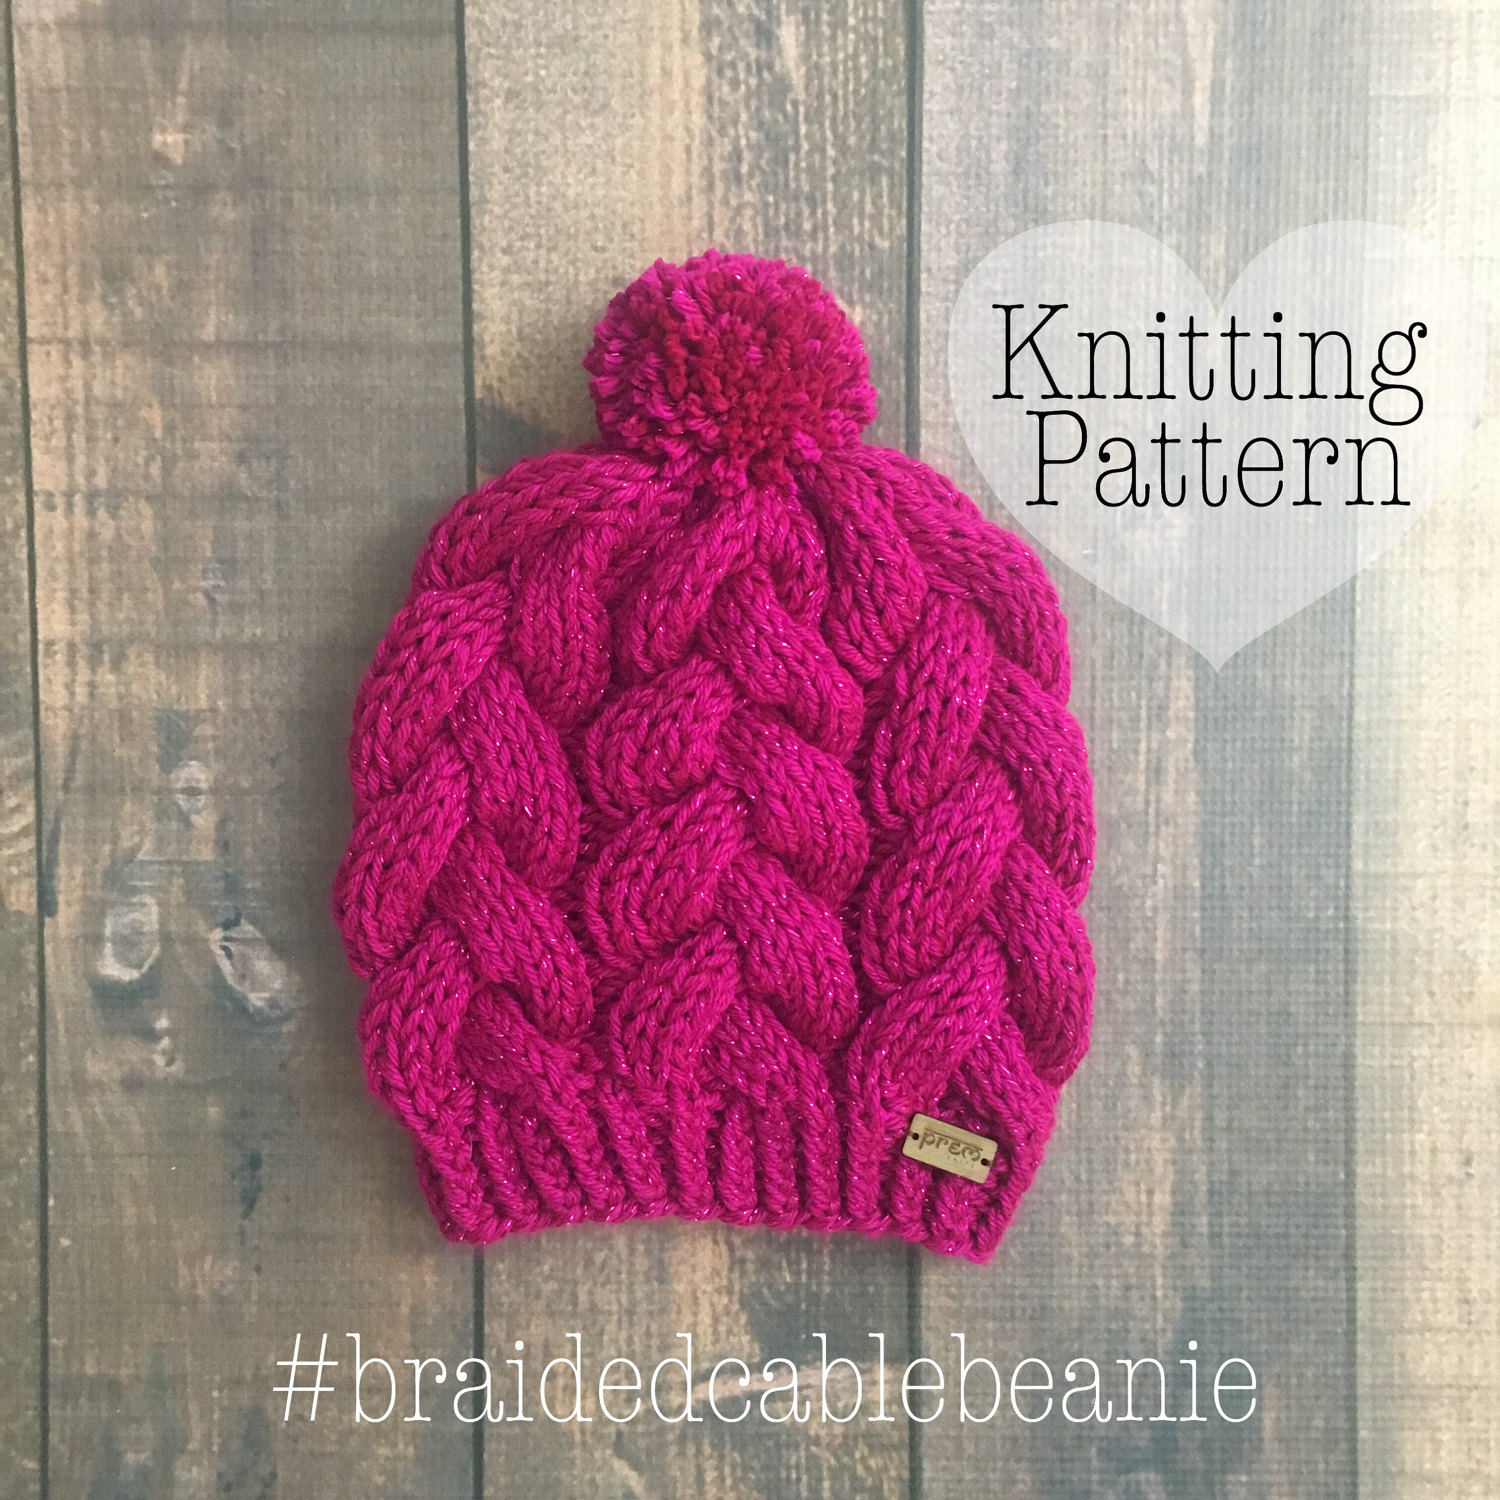 KNITTING PATTERN: Braided cable beanie